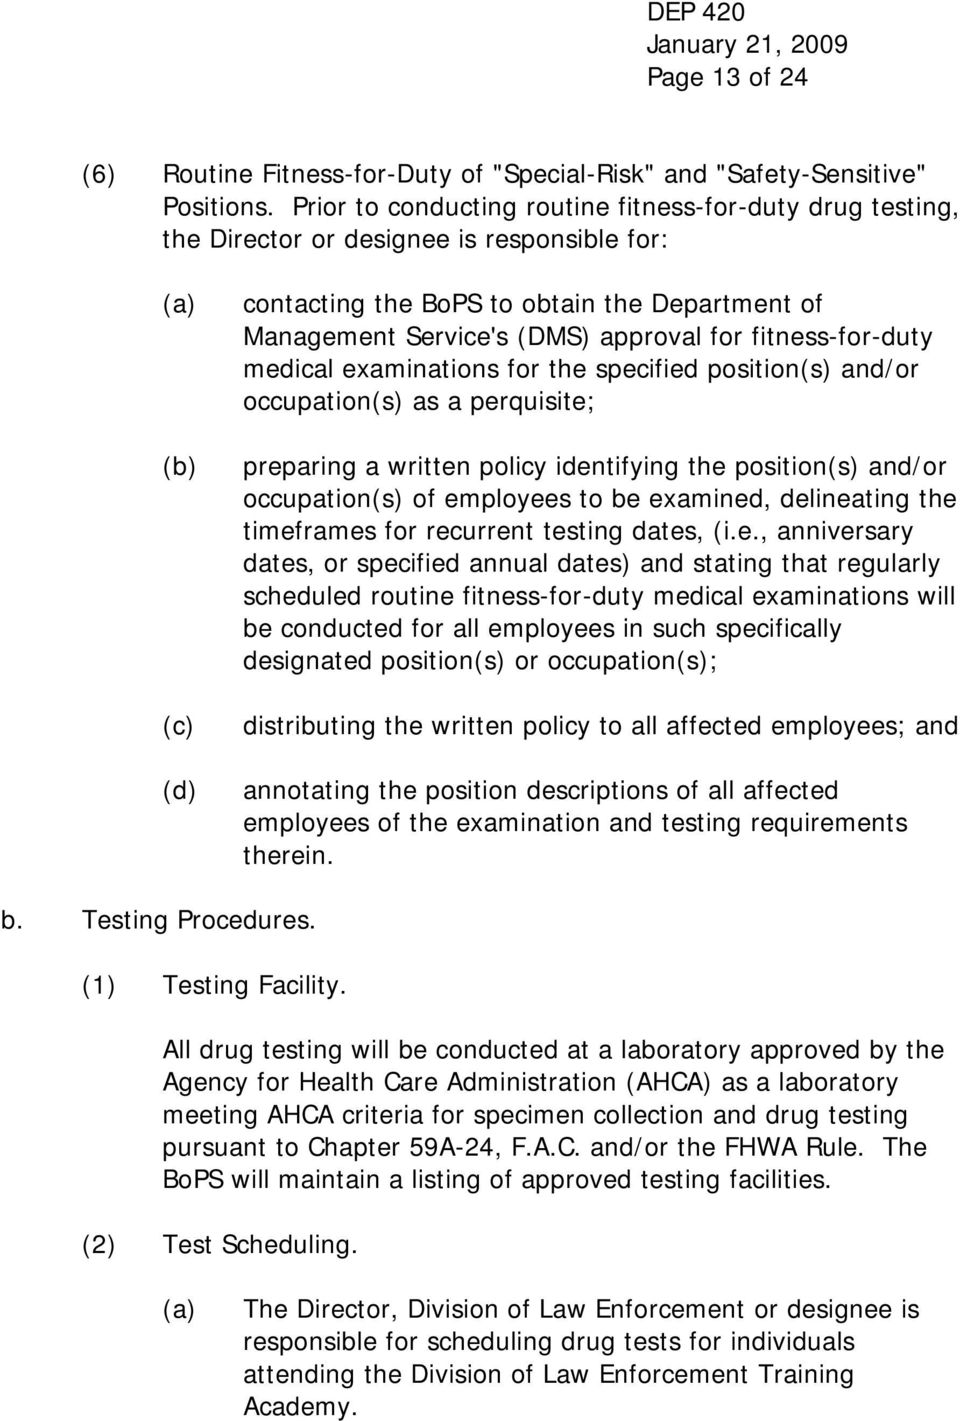 approval for fitness-for-duty medical examinations for the specified position(s) and/or occupation(s) as a perquisite; preparing a written policy identifying the position(s) and/or occupation(s) of